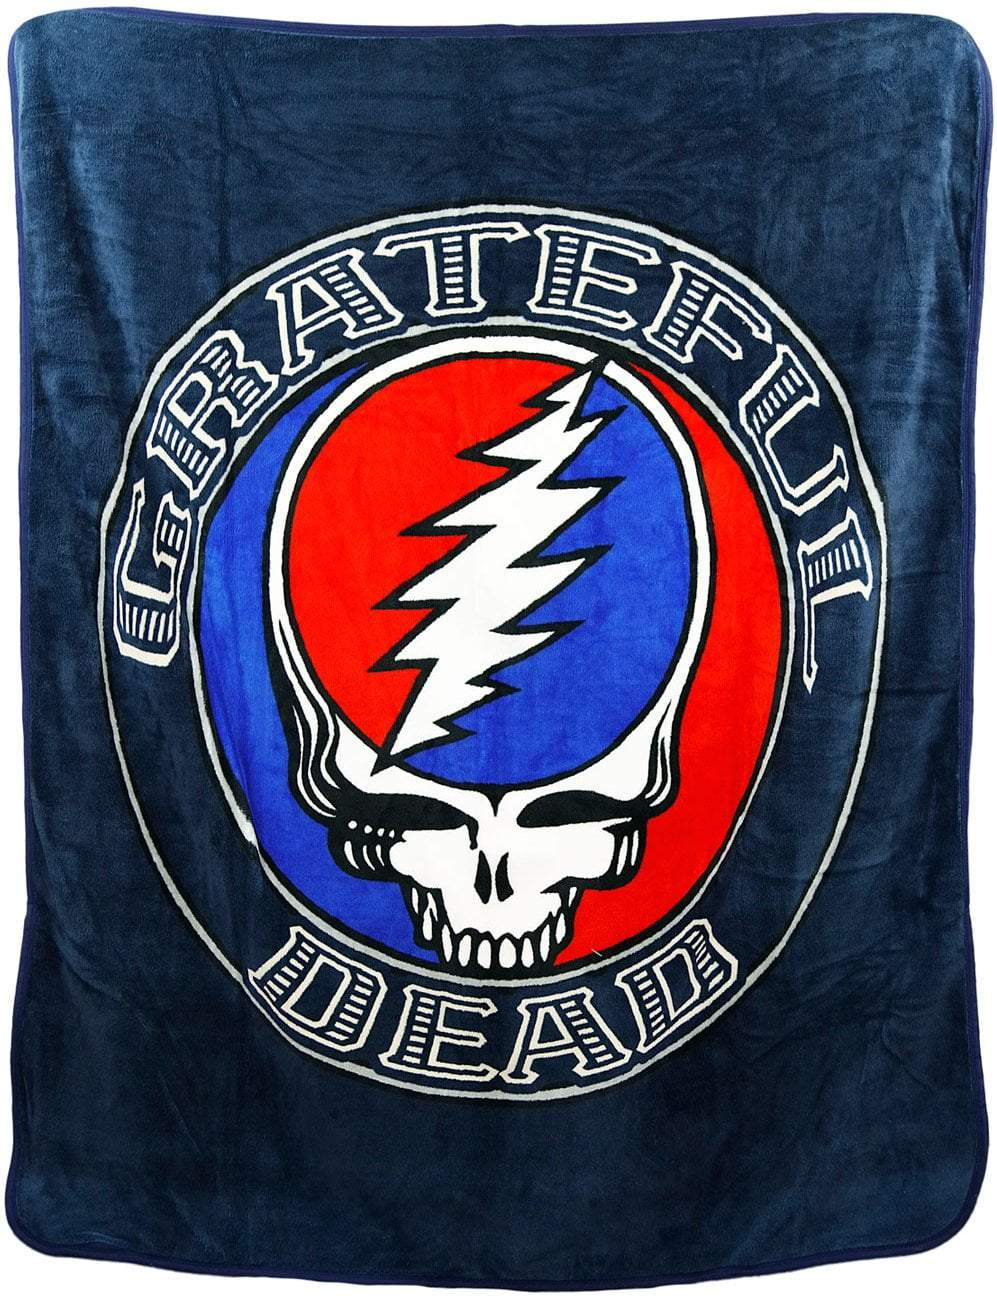 Blankets Grateful Dead - Steal Your Face - Blue - Blanket 008376